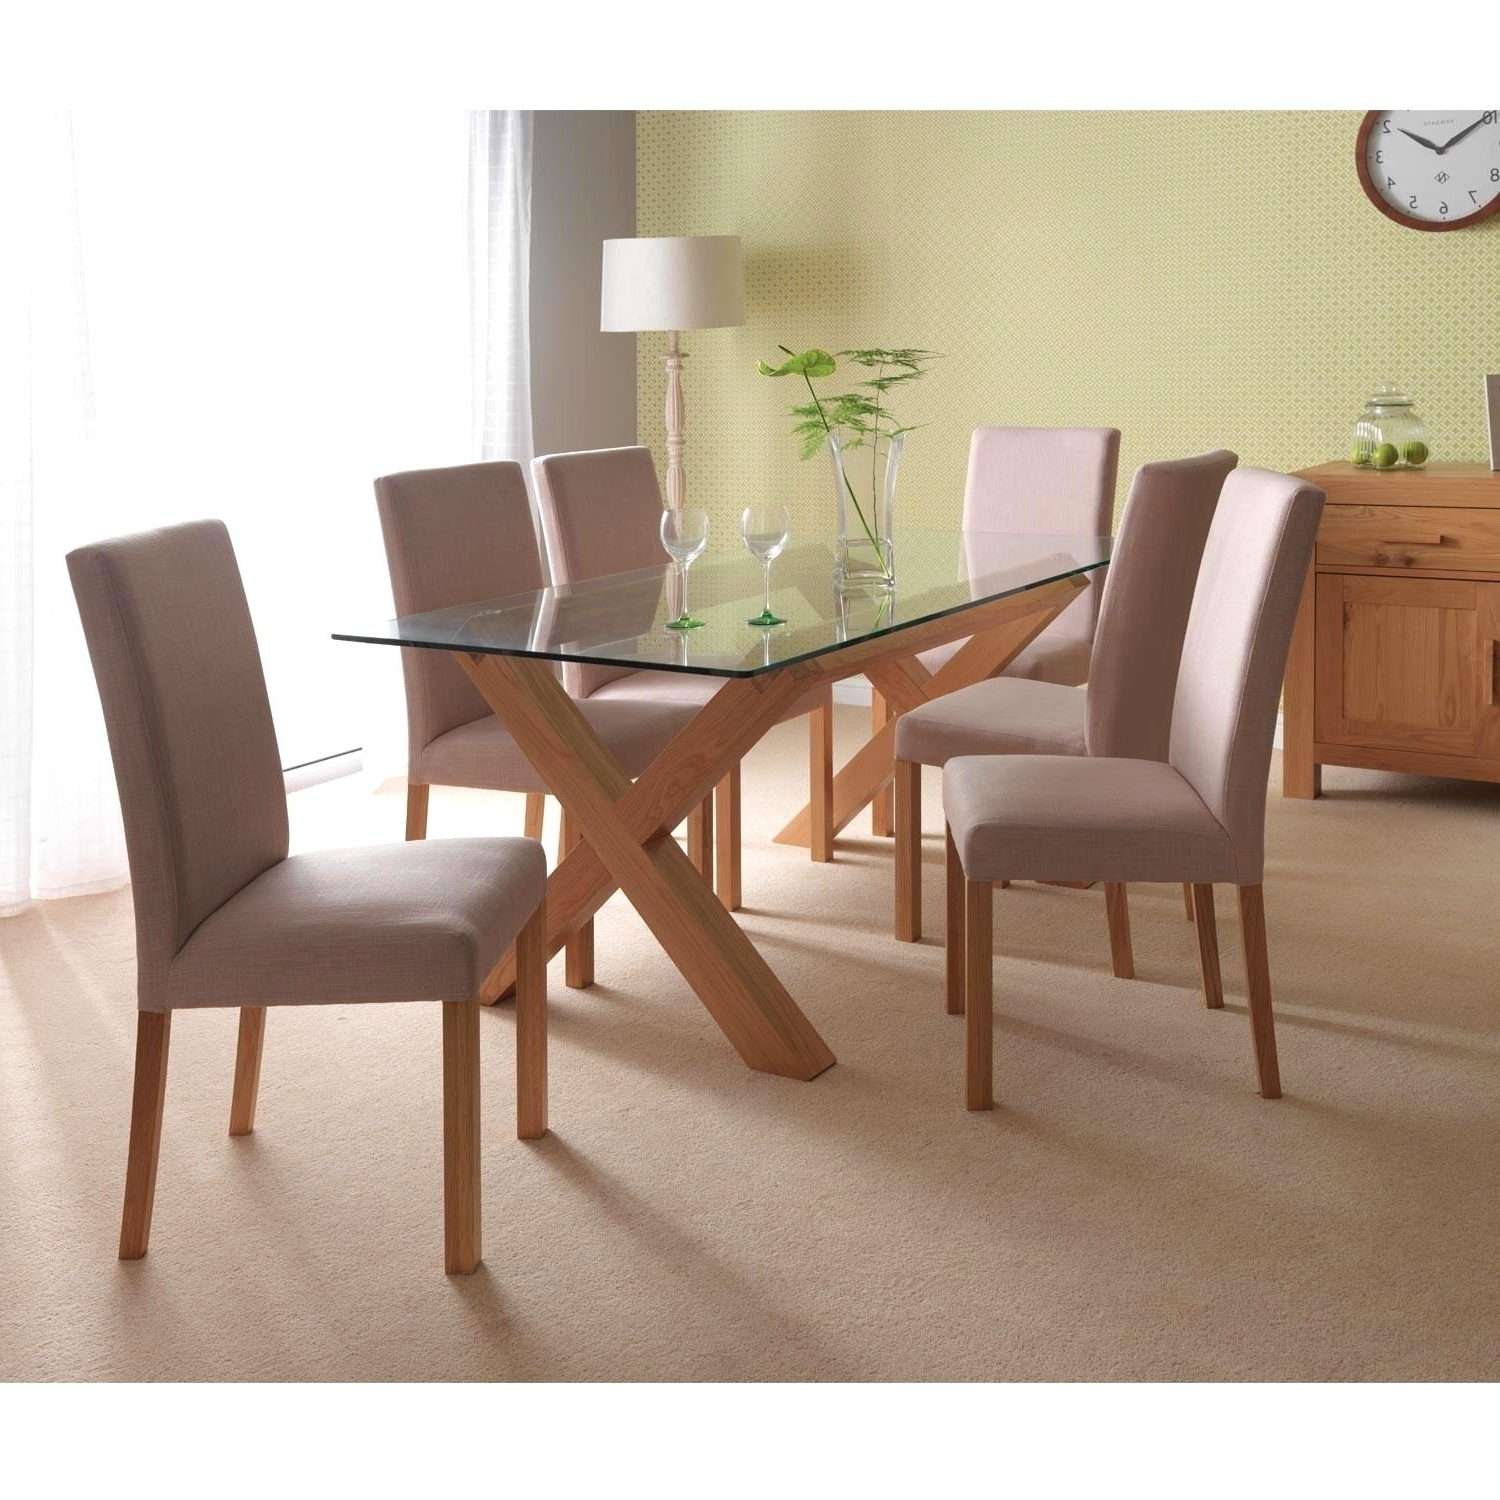 Oak And Glass Dining Tables For Widely Used Fascinating Oak Glass Dining Tables Ideas Winsome Dining Space    (View 11 of 25)